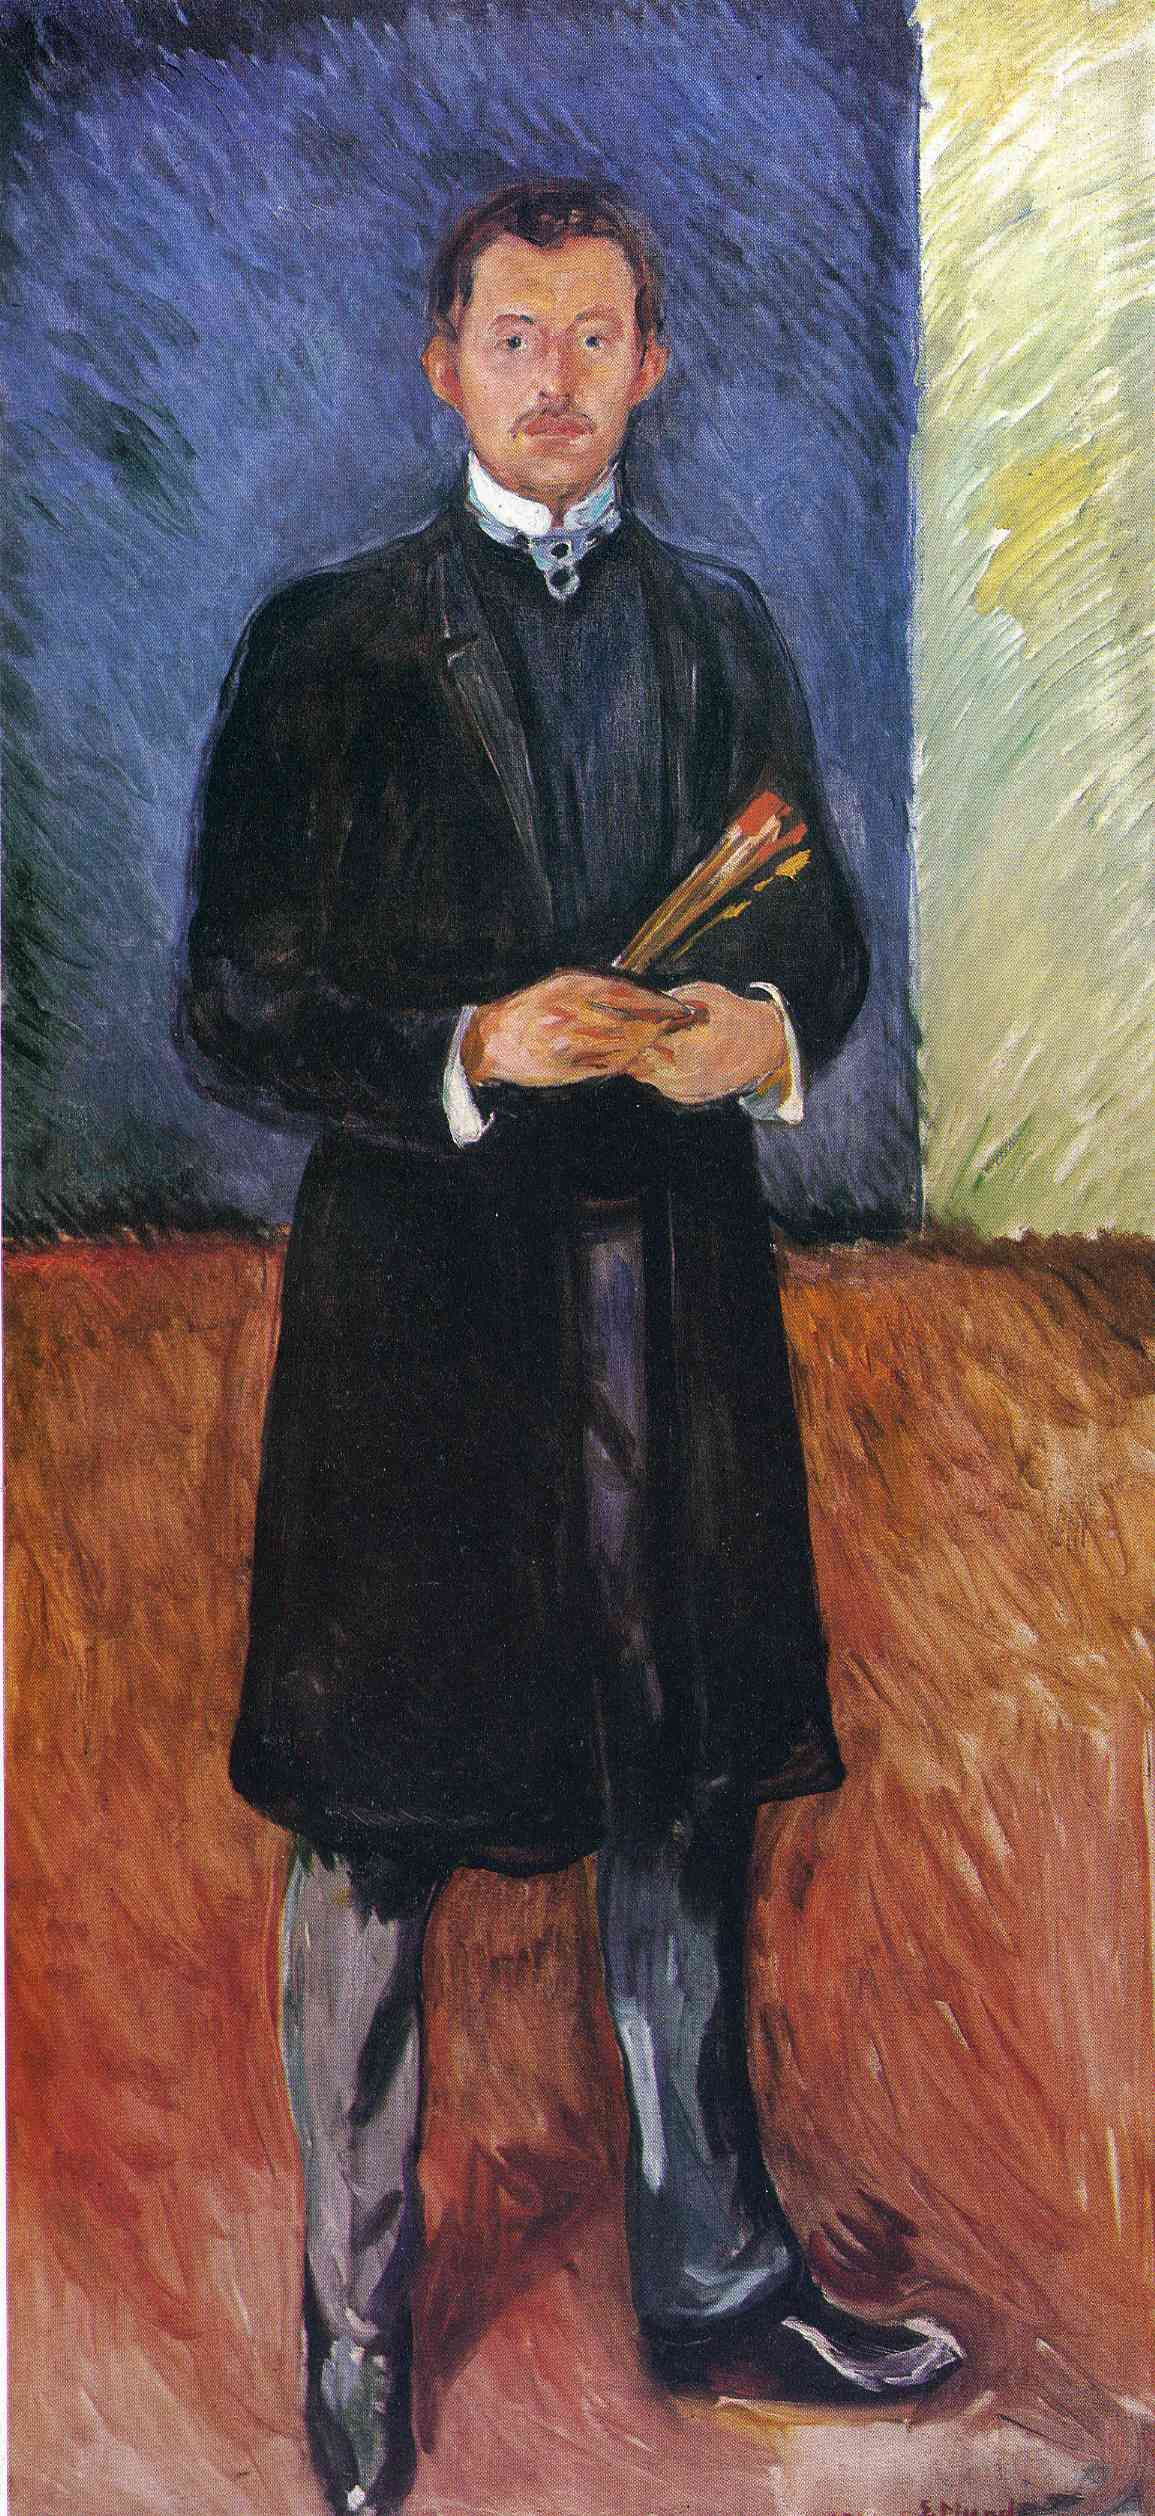 Edvard Munch. Self-portrait with brushes